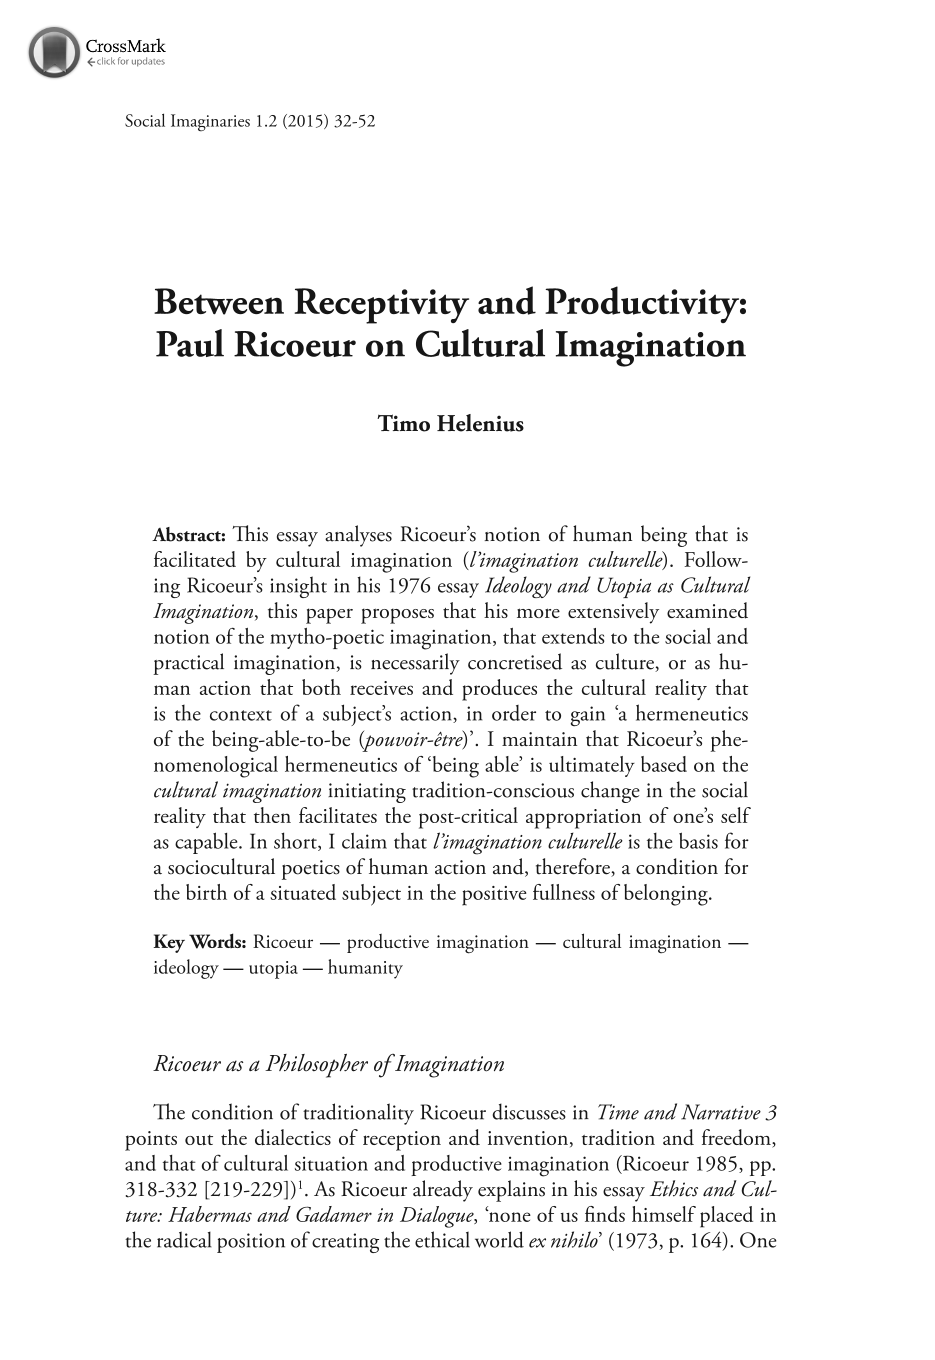 between receptivity and productivity paul ricoeur on cultural document is being loaded